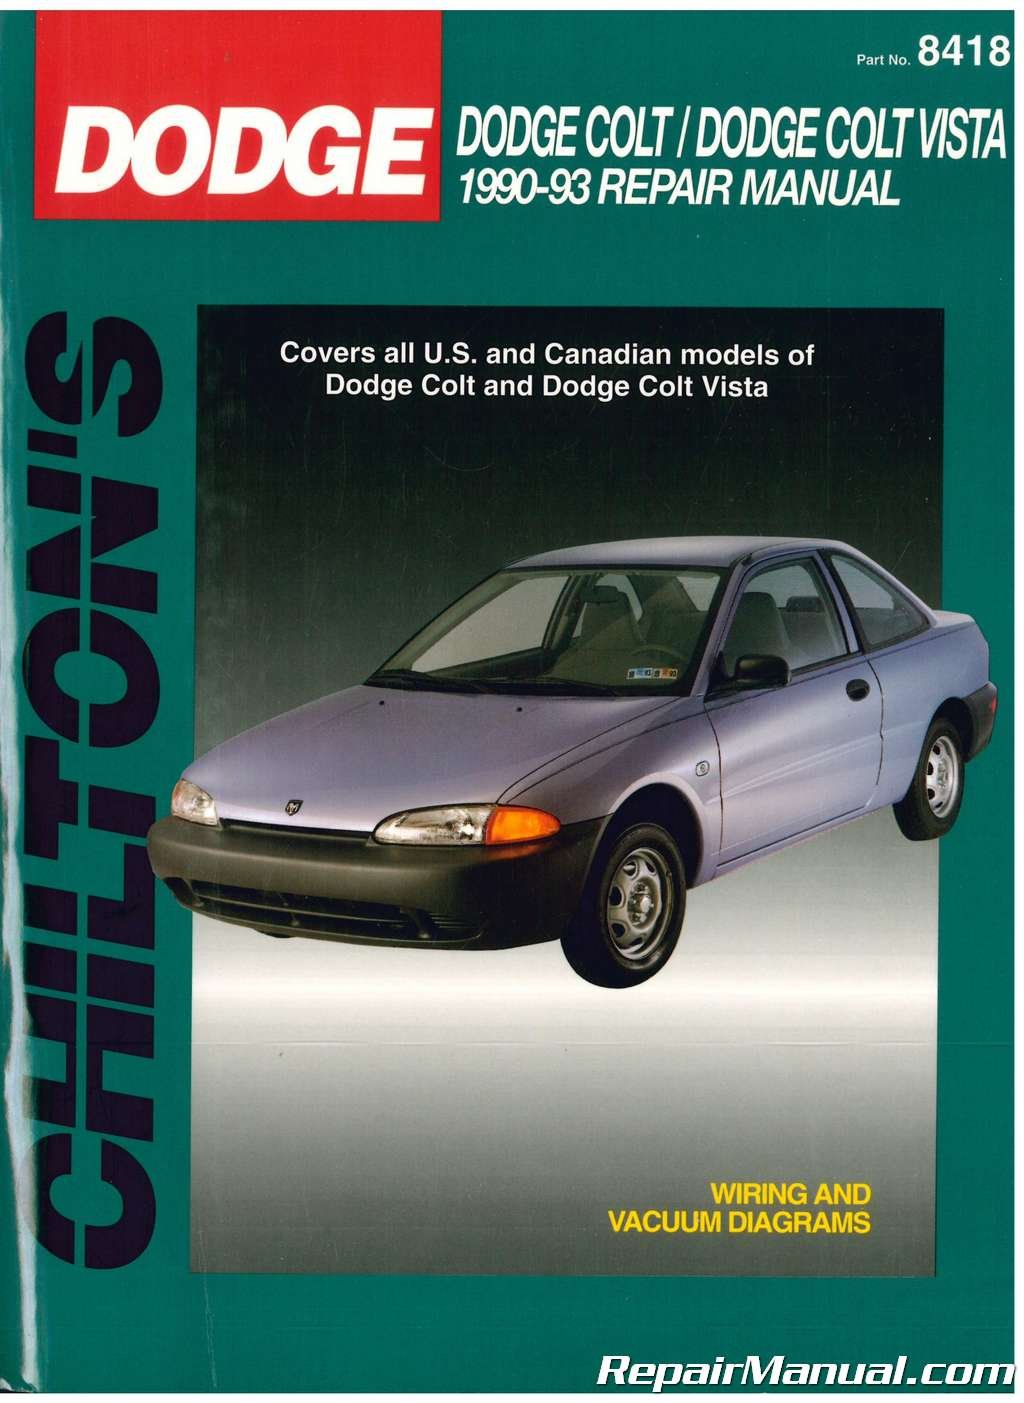 CH20342 Chilton Dodge and Plymouth Colt Vista 1990-1993 Repair Manual:  Manufacturer: Amazon.com: Books